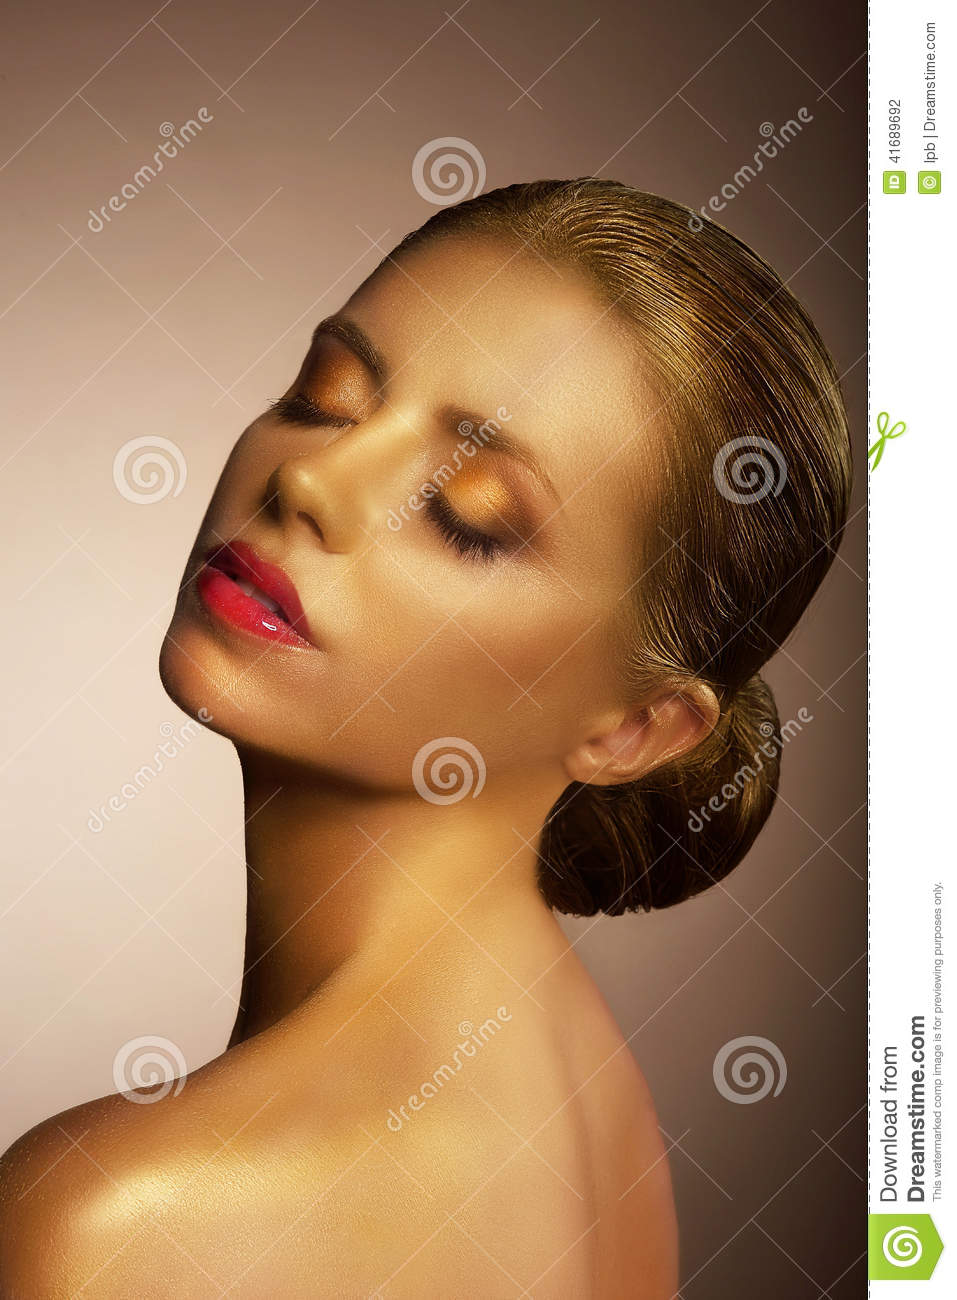 Artistry. Fanciful Bronzed Woman s Face. Futuristic Art Gold Makeup